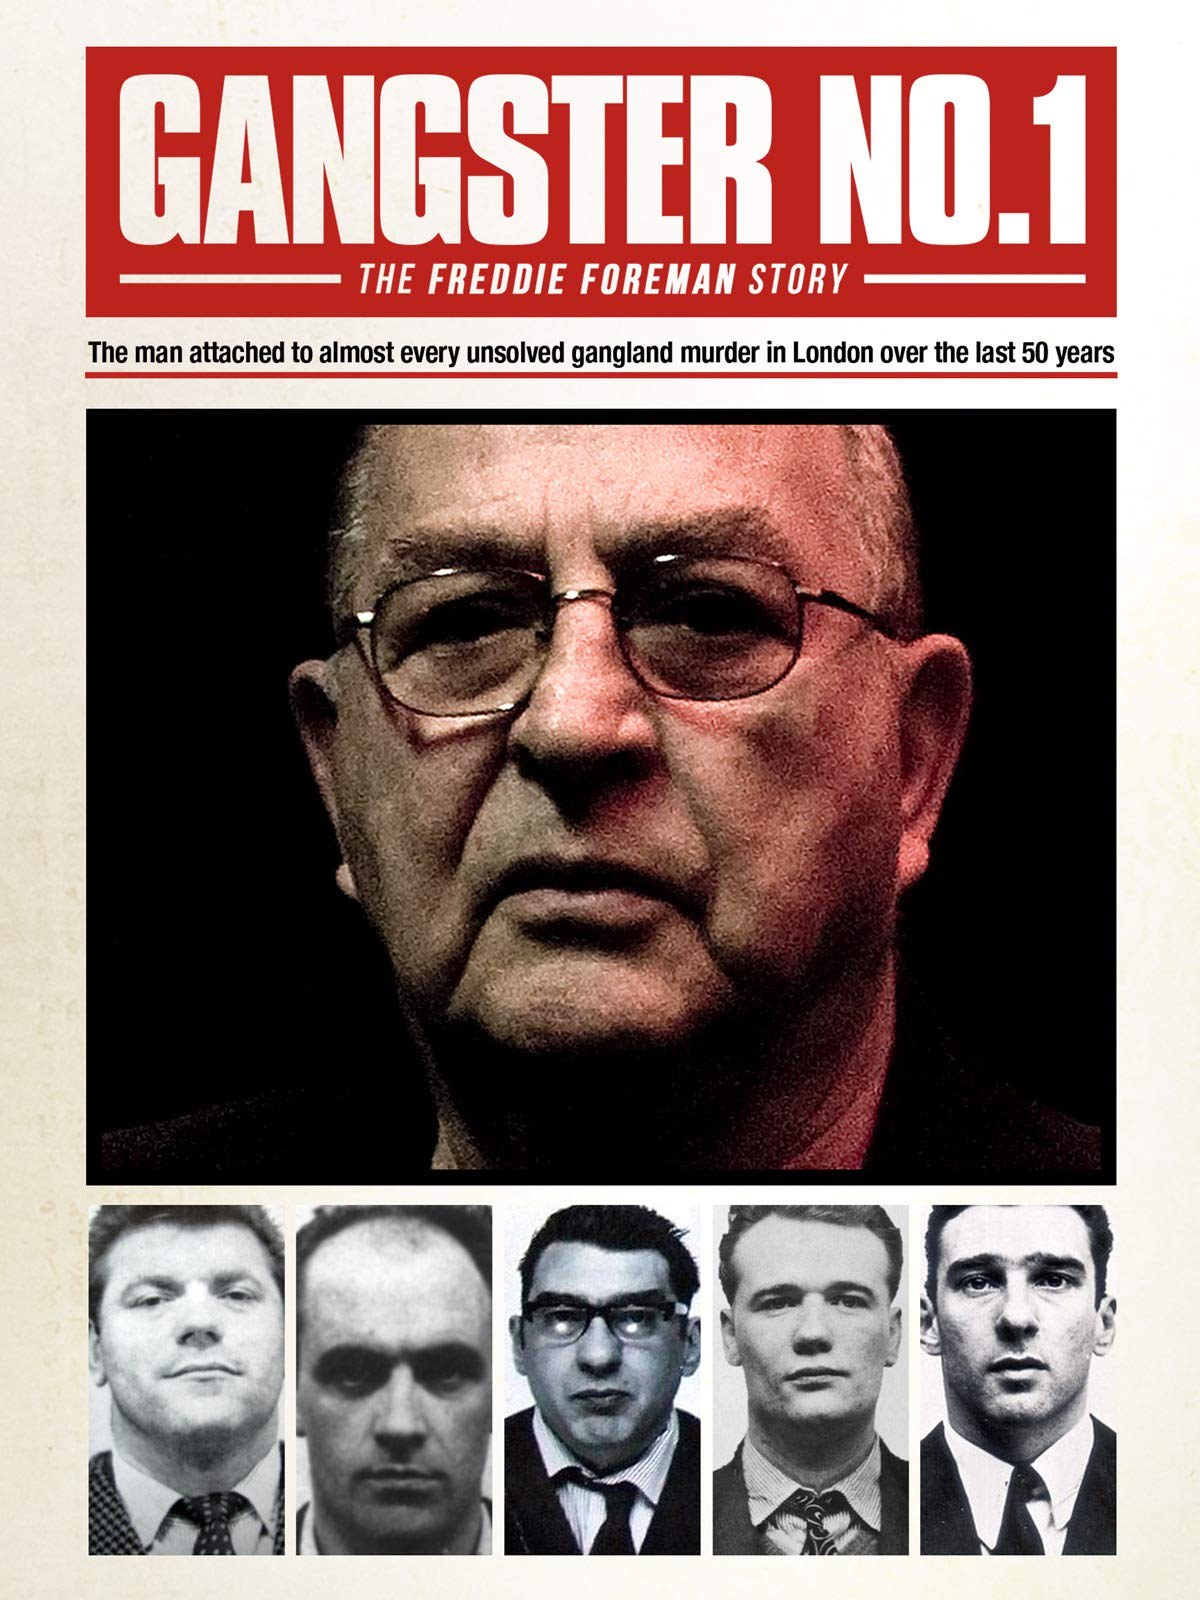 Gangster No 1 - The Freddie Foreman Story